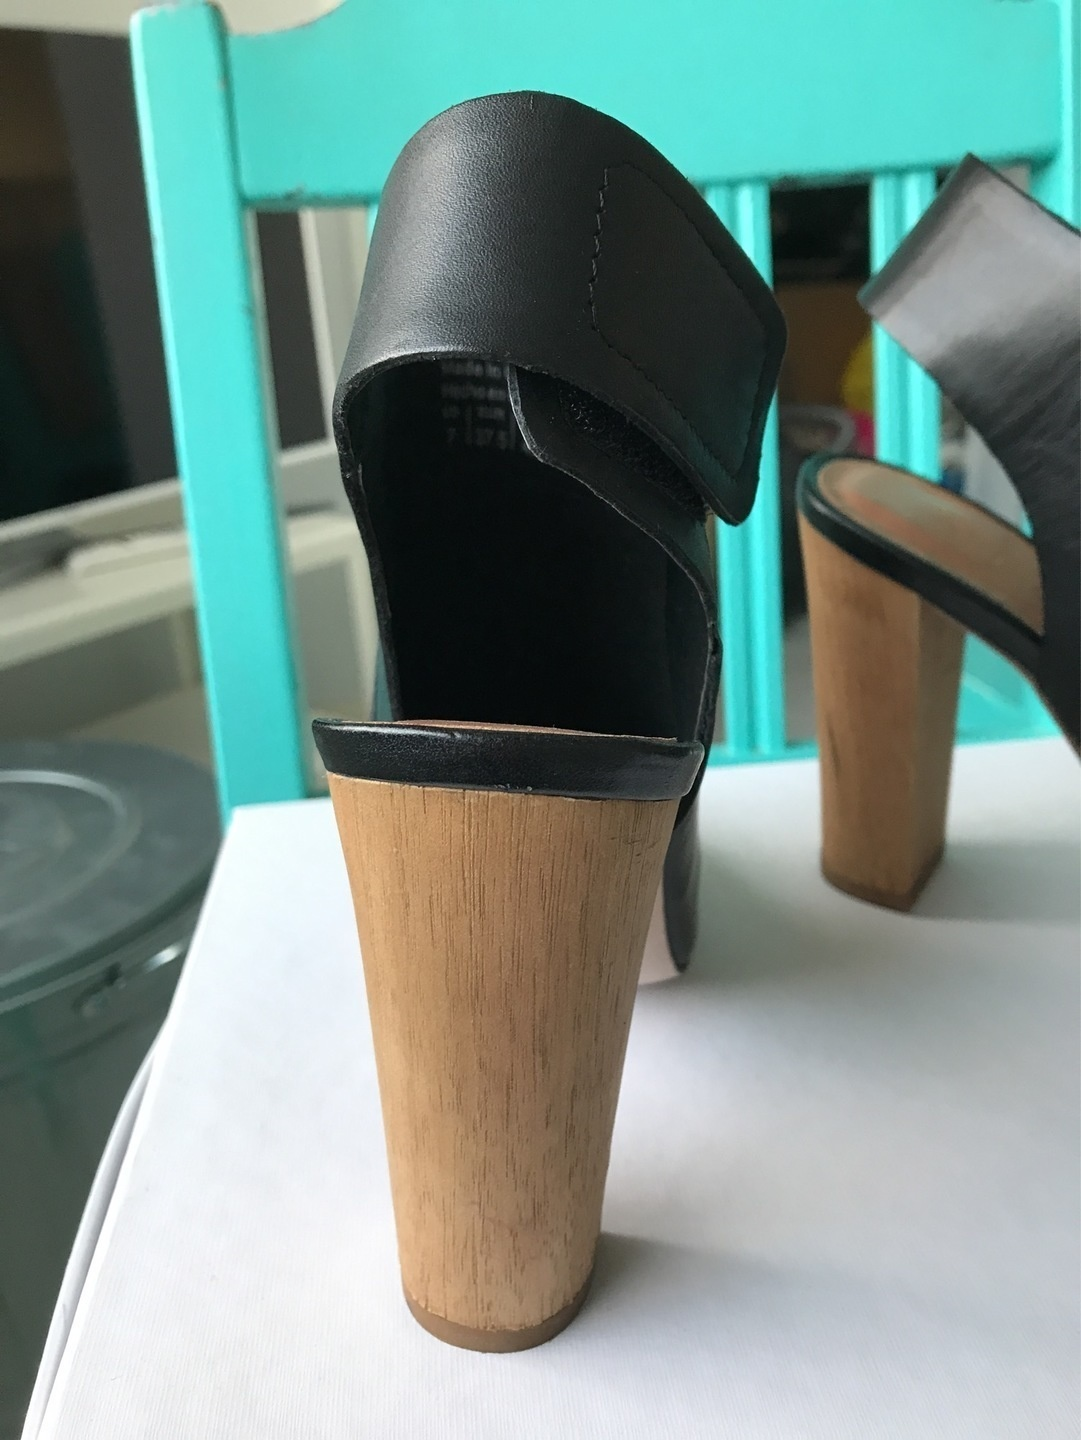 Women's heels & dress shoes - ALDO photo 2